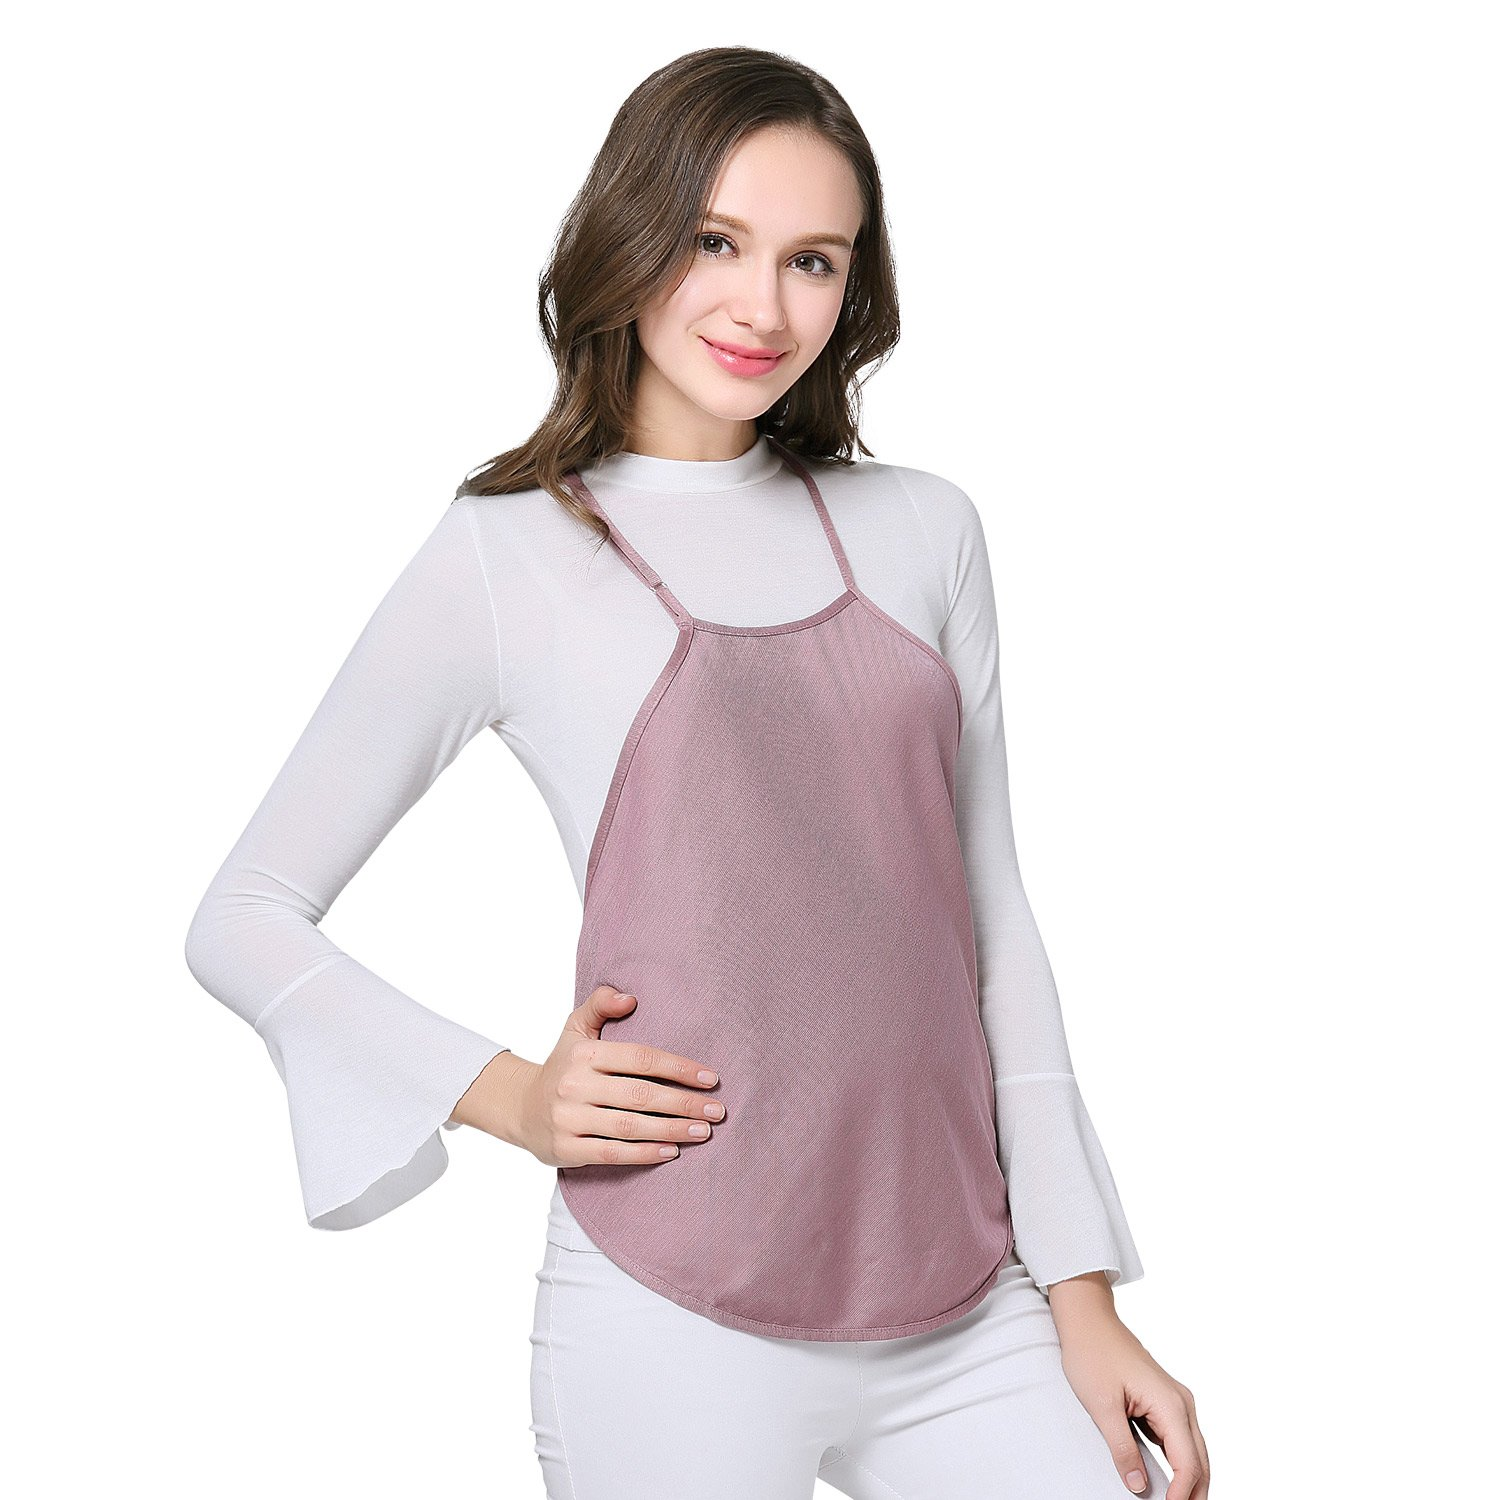 d683af90815 ... JOYNCLEON Anti-Radiation Maternity Clothes Belly Tee 100% Silver Fiber  Baby Mom Protection Shield ...